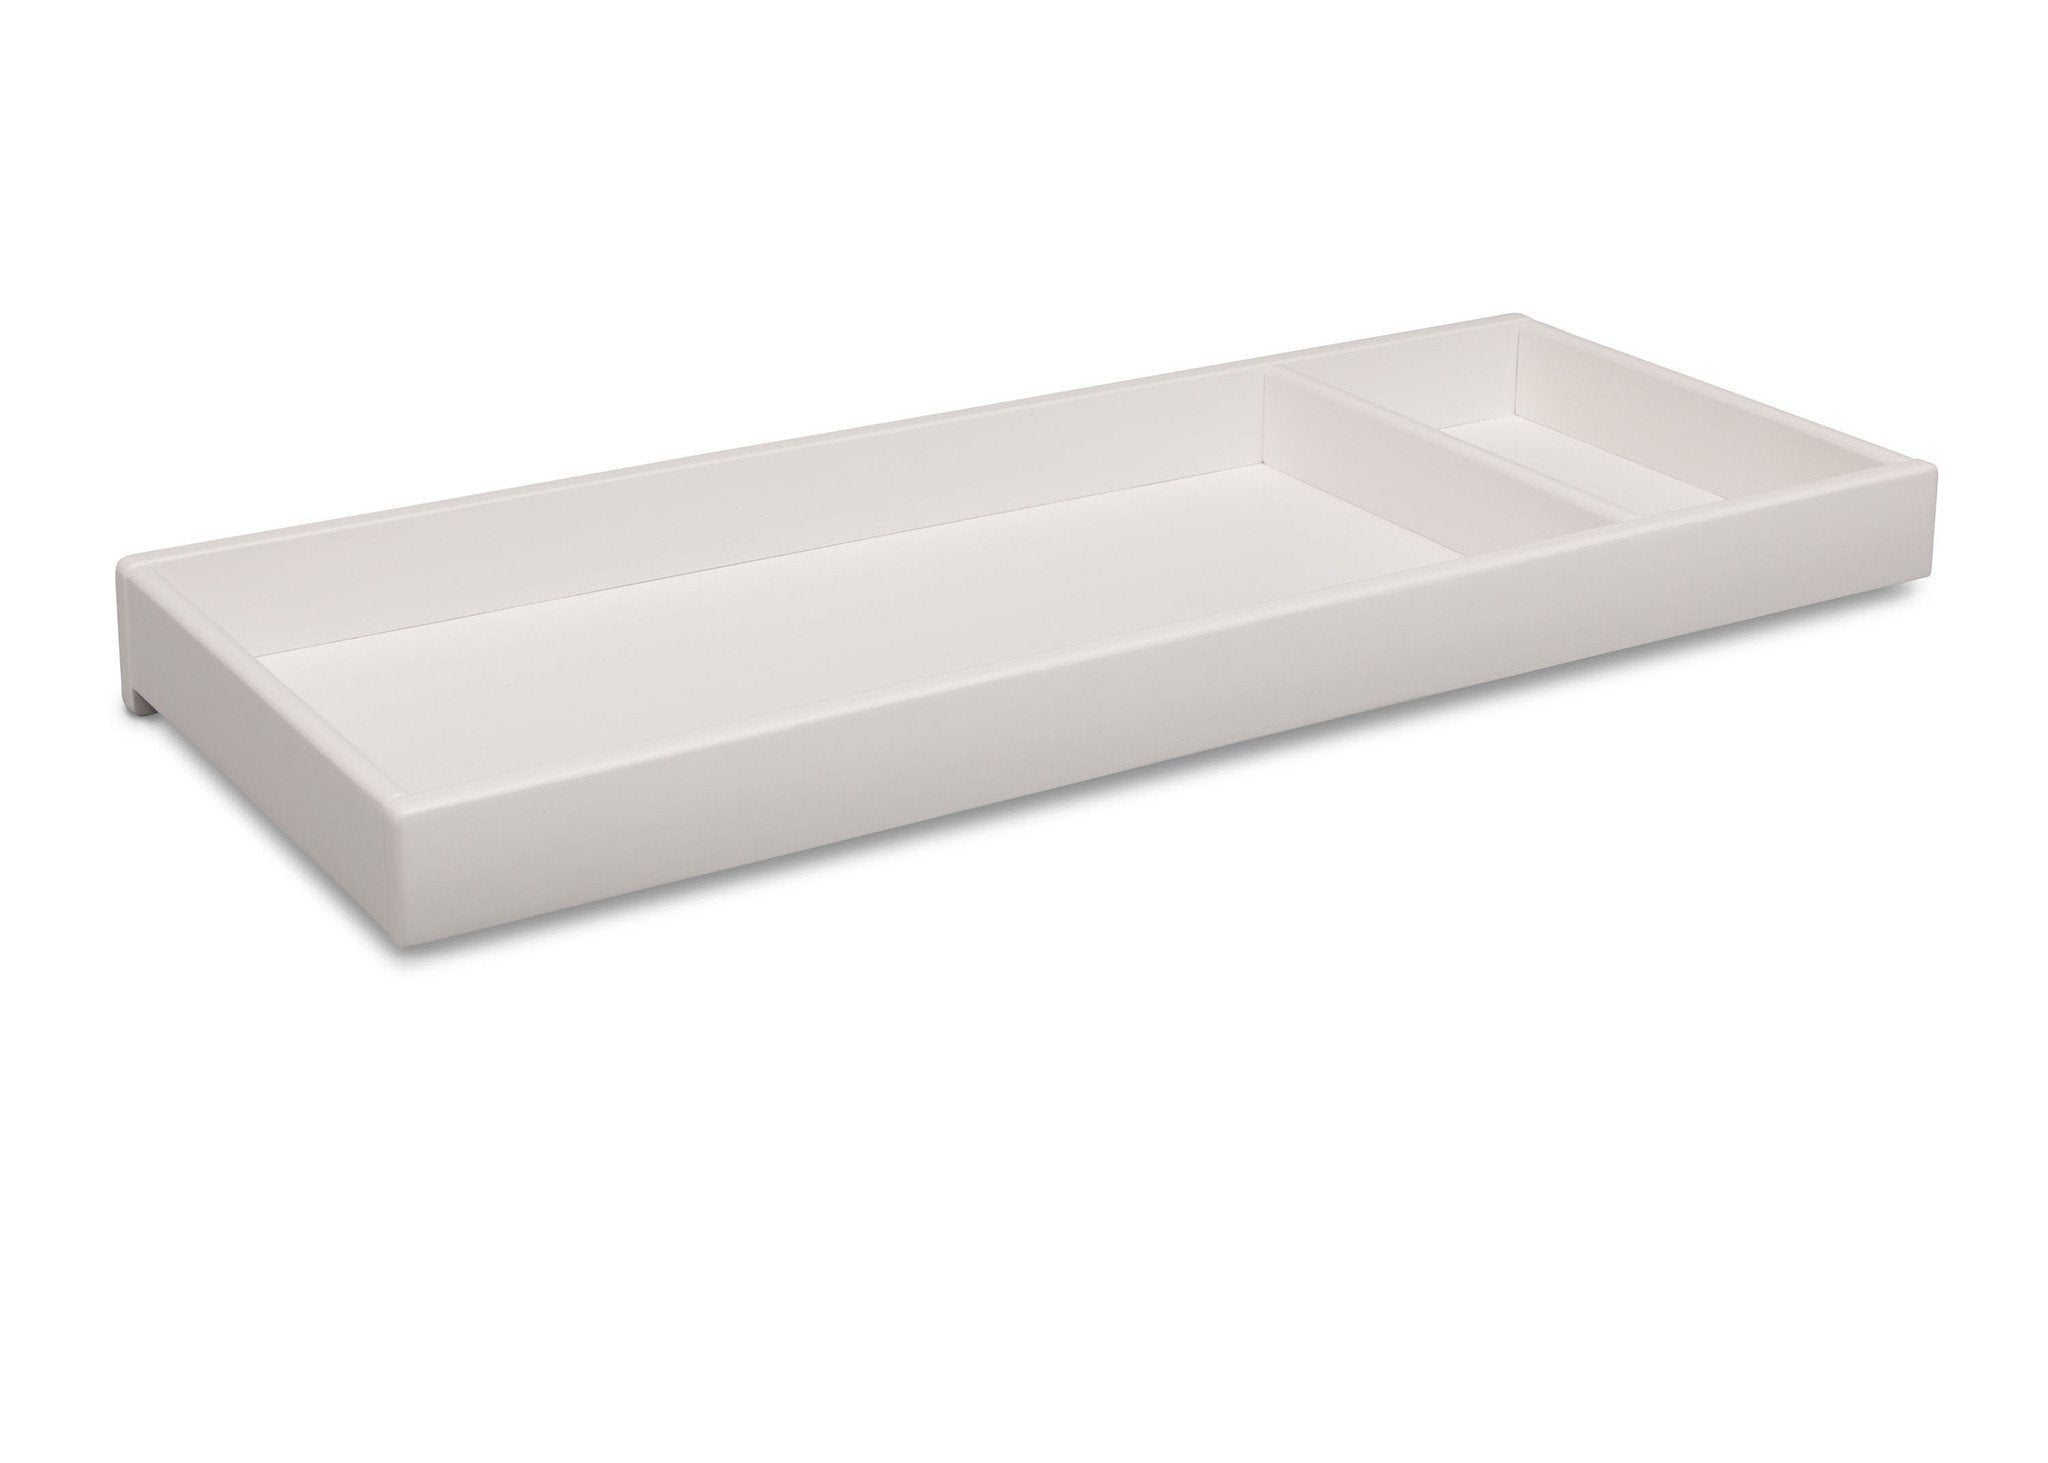 Simmons Kids Bianca (130) Deluxe Changing Tray, Angled View a2a